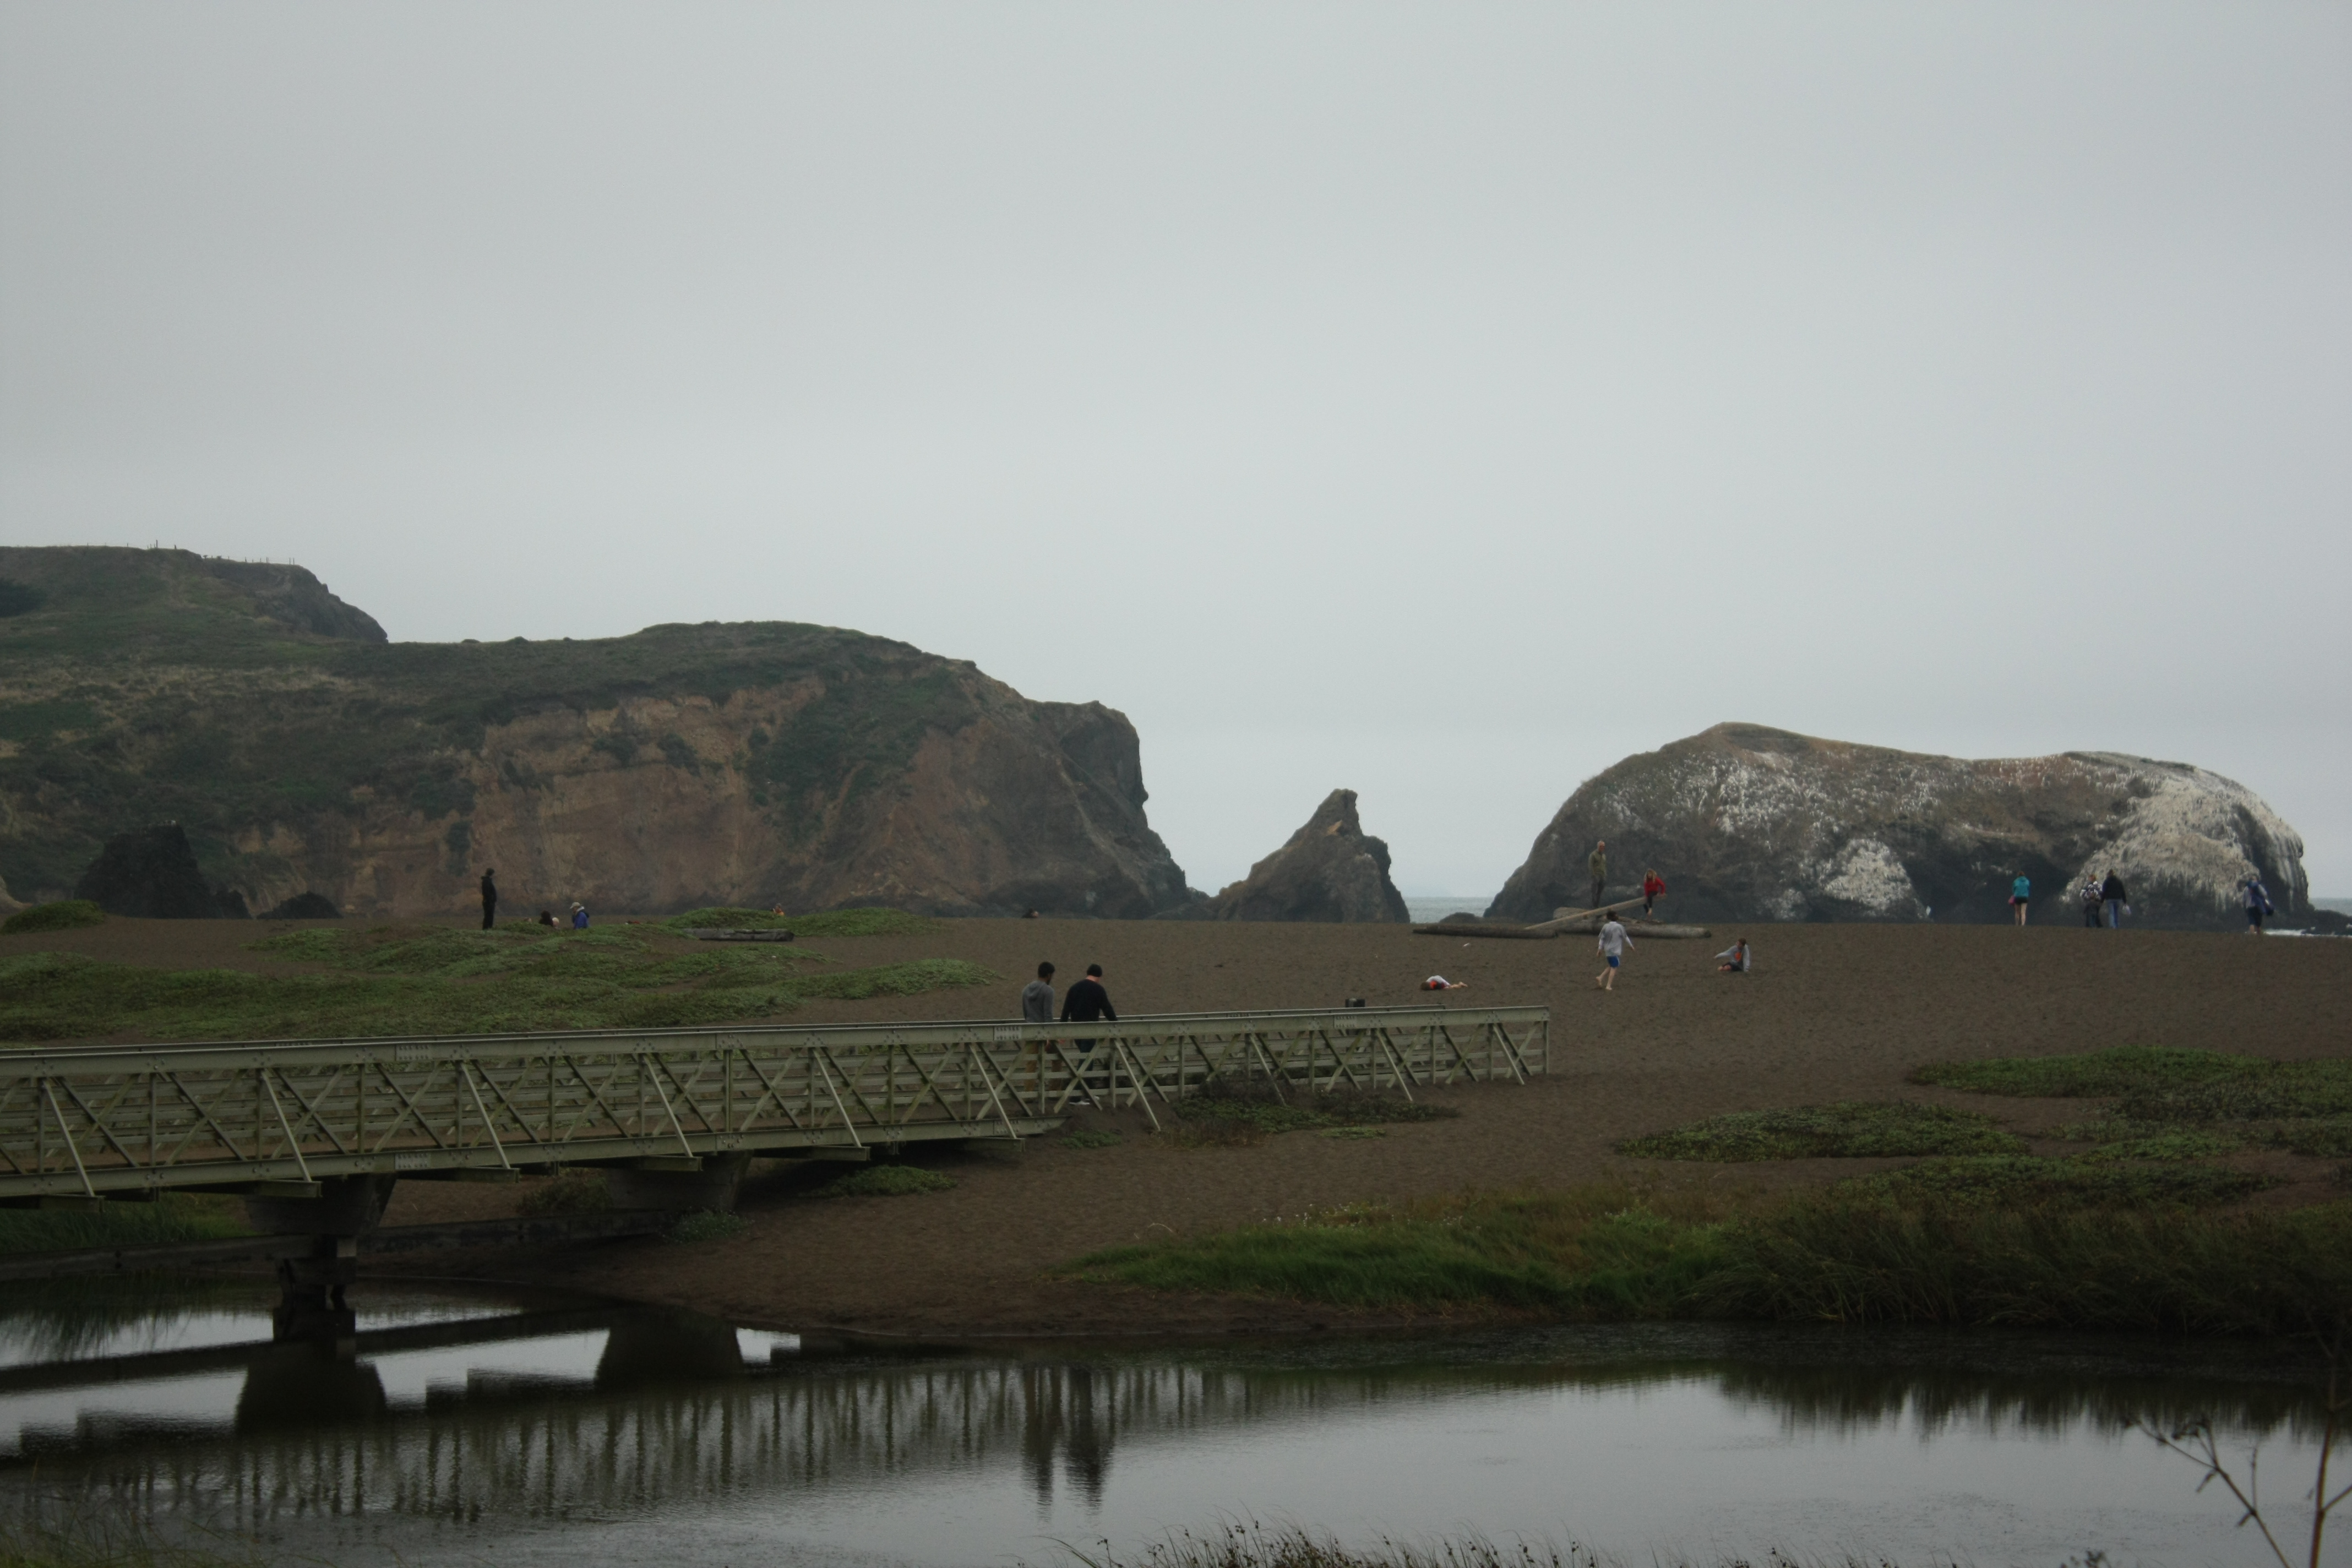 The lagoon and beach were our playground and scenario location